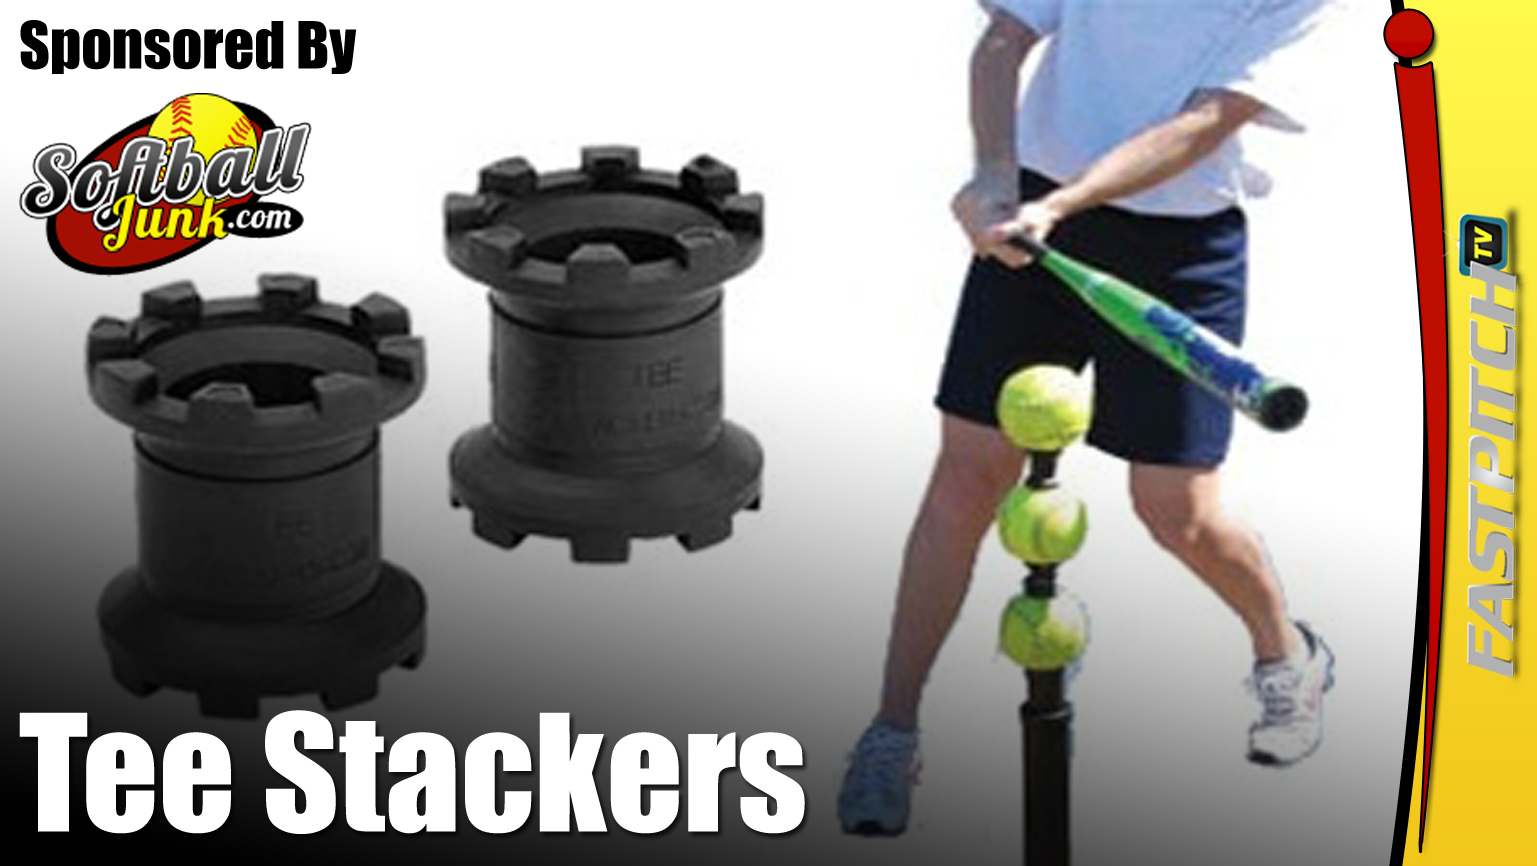 Tee Stackers Are Great For Batting Tee Work $14.95